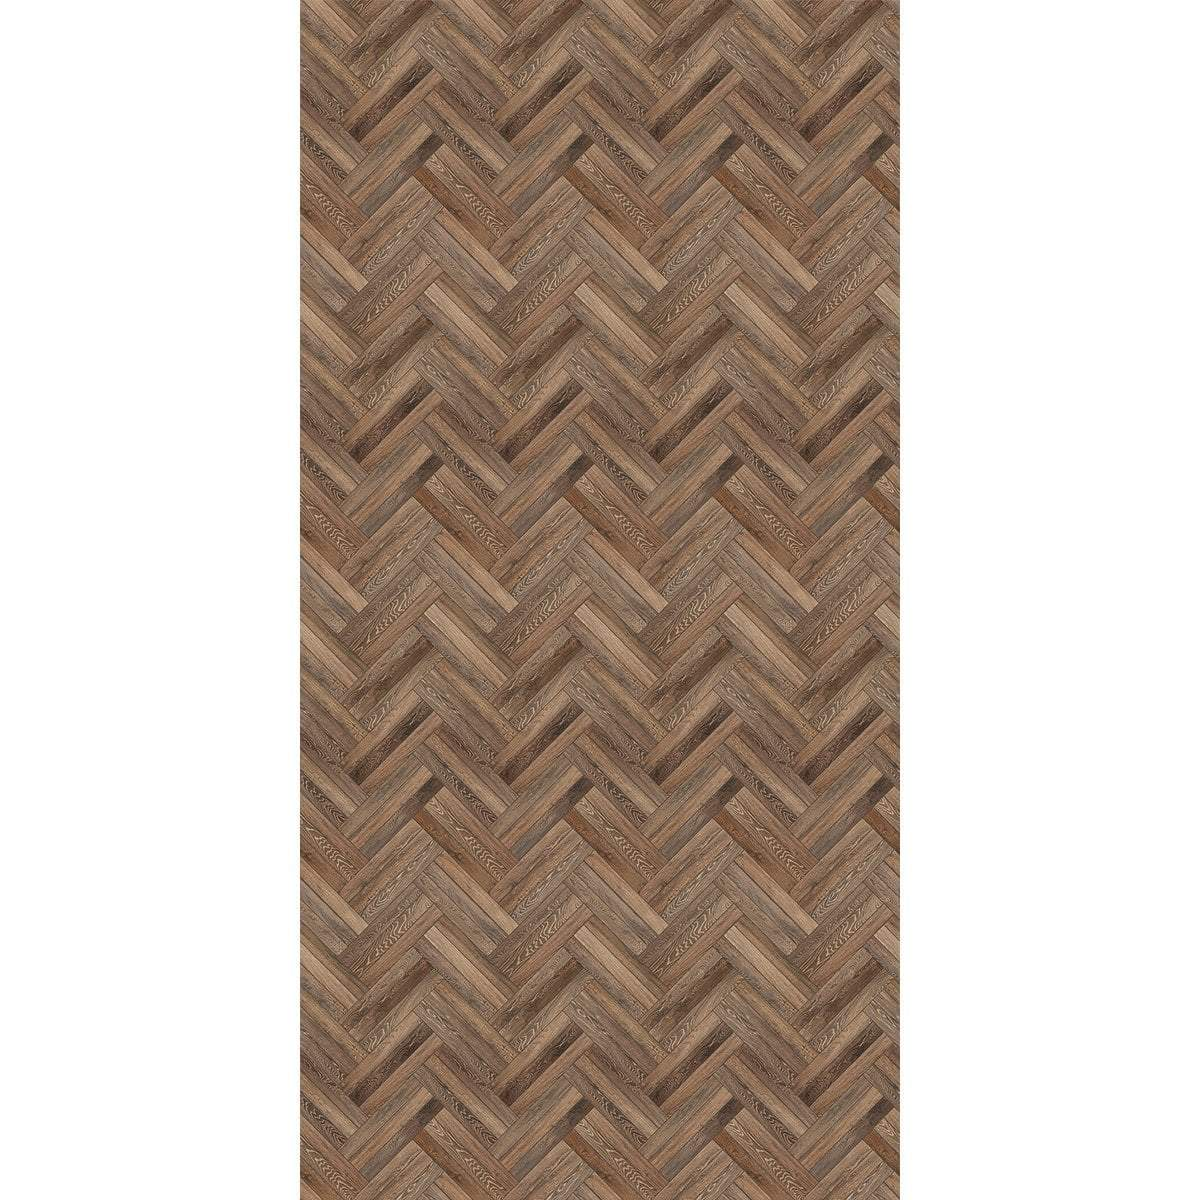 Wall Acoustics Herringbone Small Muffle Pattern - Wood Herringbone Small